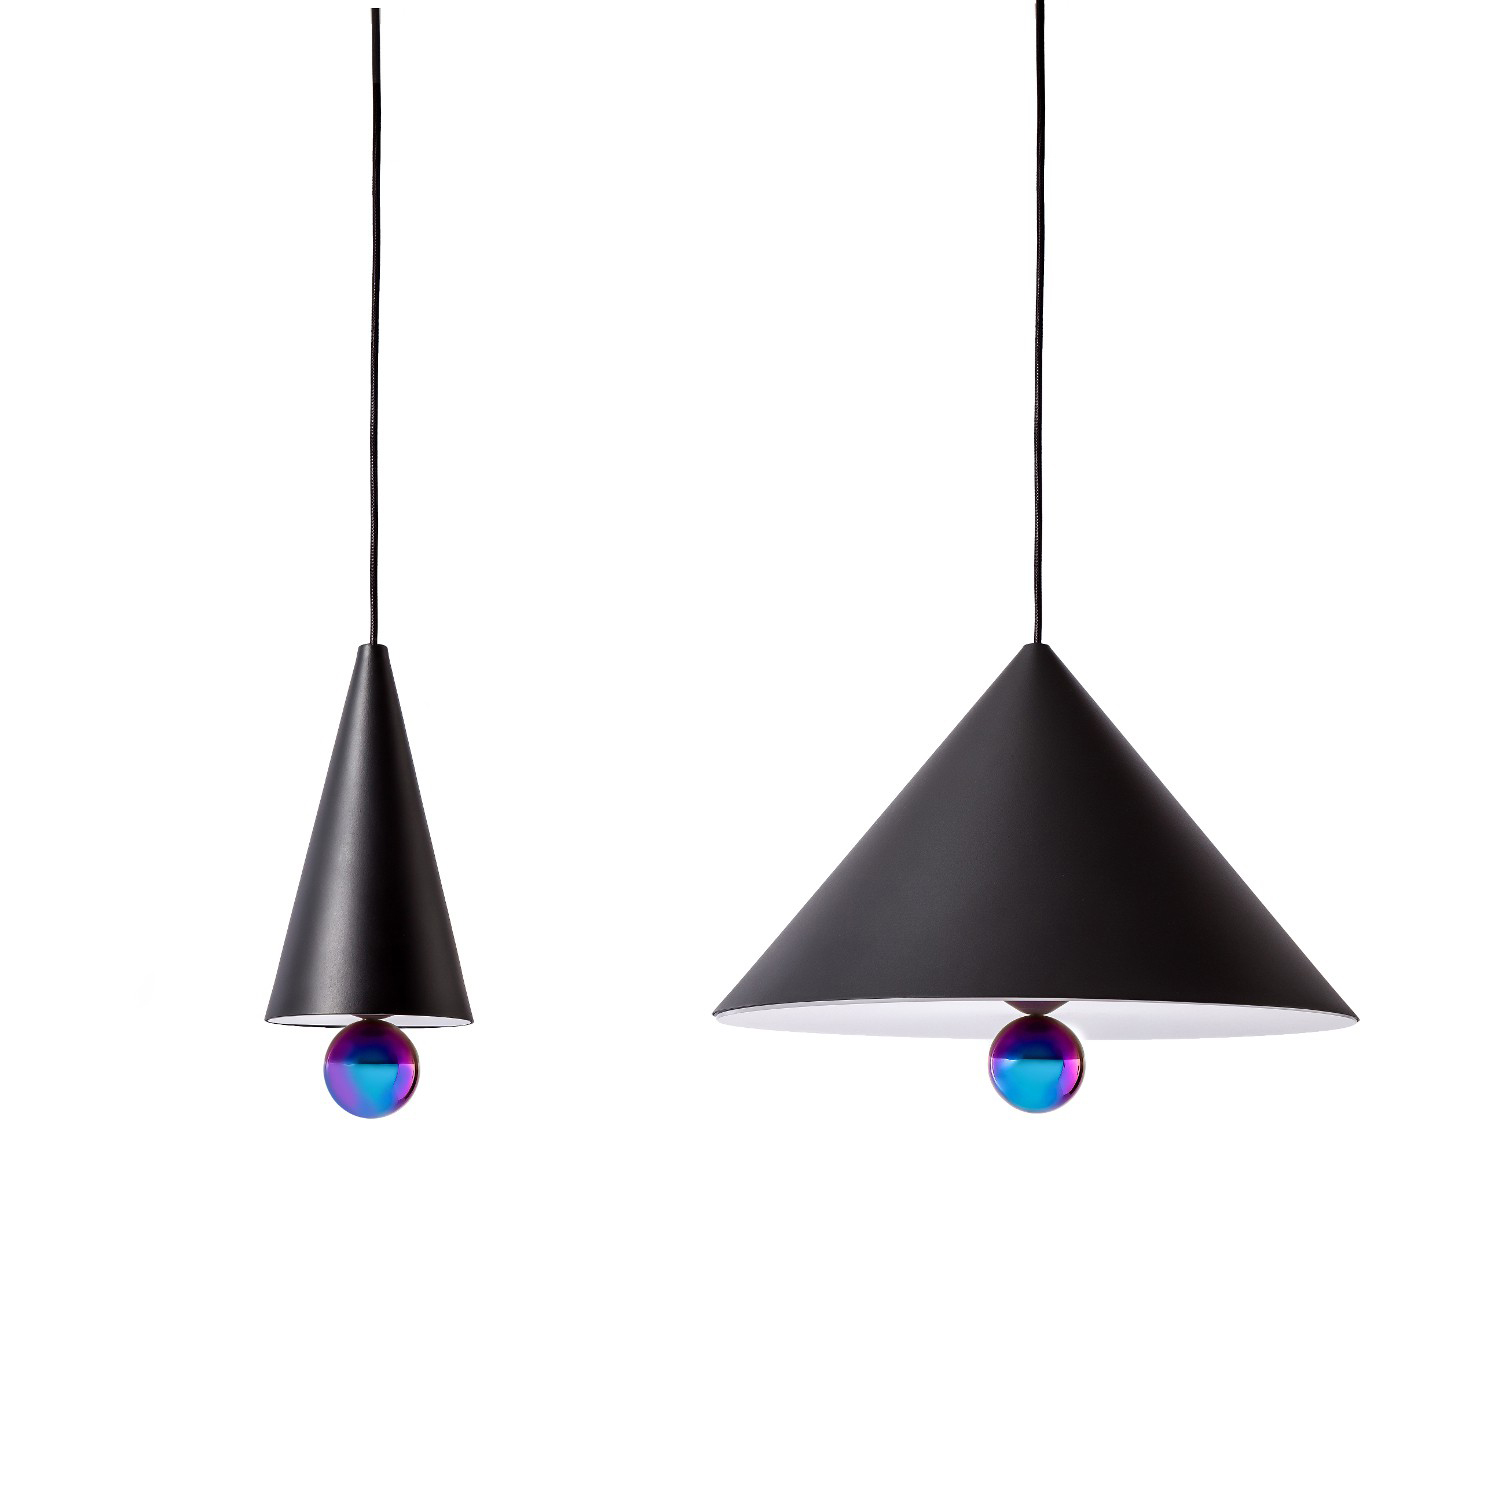 Cherry Lamp by Daniel Emma for Petite Friture | Yellowtrace